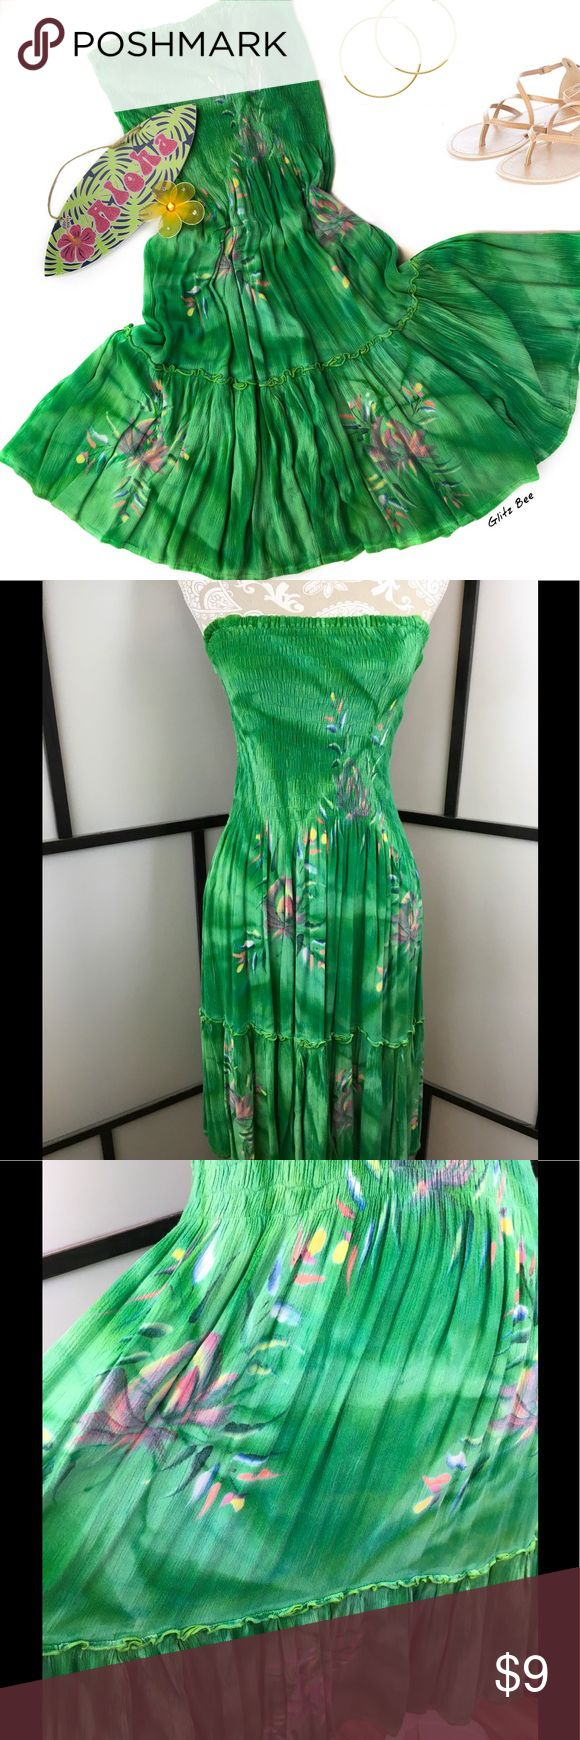 Green Floral Batik Strapless Dress, L/XL Bright green strapless batik sundress with a full skirt and elastic top. Size large to extra large, no flaws to note. Bust-14-21 elastic, Length-34.  Fun, carefree dress for a summer festival or top over your swimsuit for lunch by the pool. Tropical Batik Dresses Midi